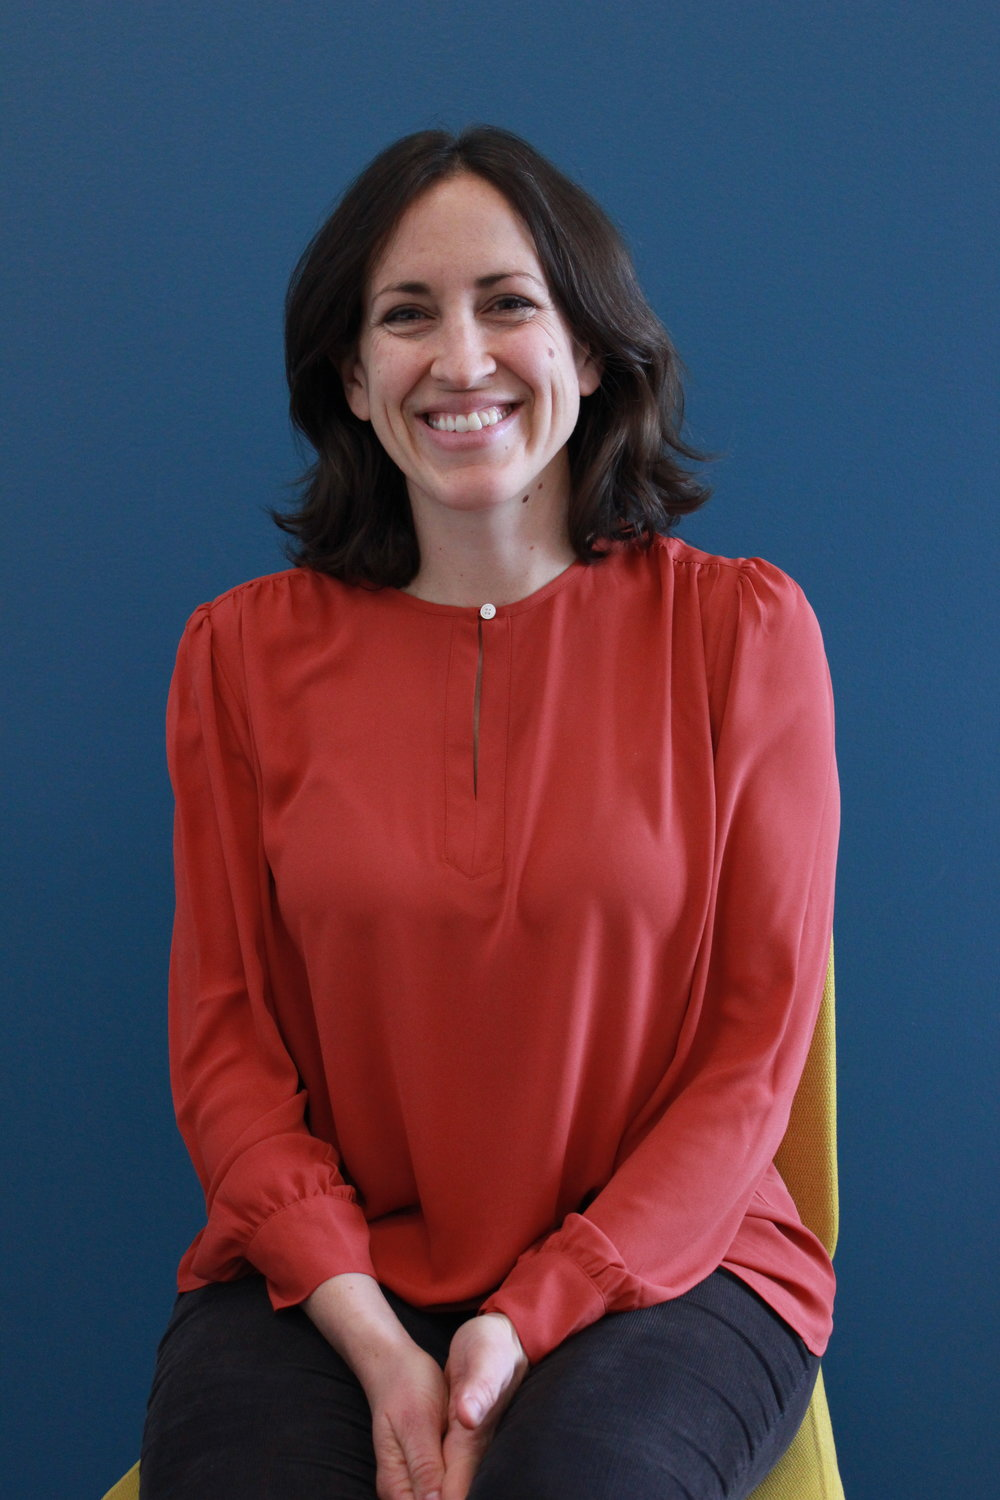 Amy Walker - Walker teaches watchdog reporting and digital and data journalism. Before coming to Quinnipiac, she worked for several years as a journalist at The New York Times.